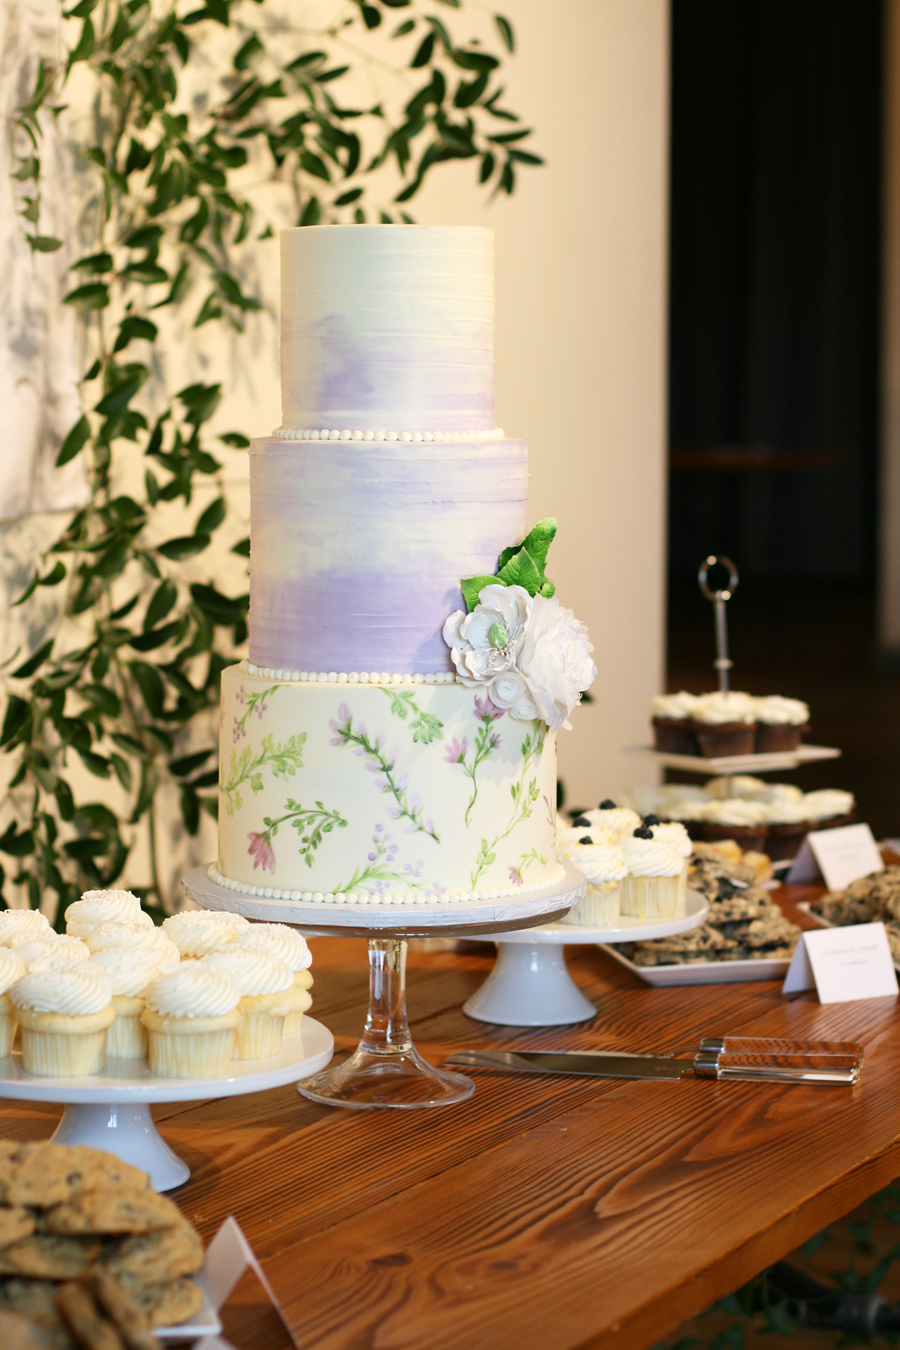 Hand-painted buttercream on the bottom tier, this whimsical beauty was the centerpiece of a fabulous dessert table.